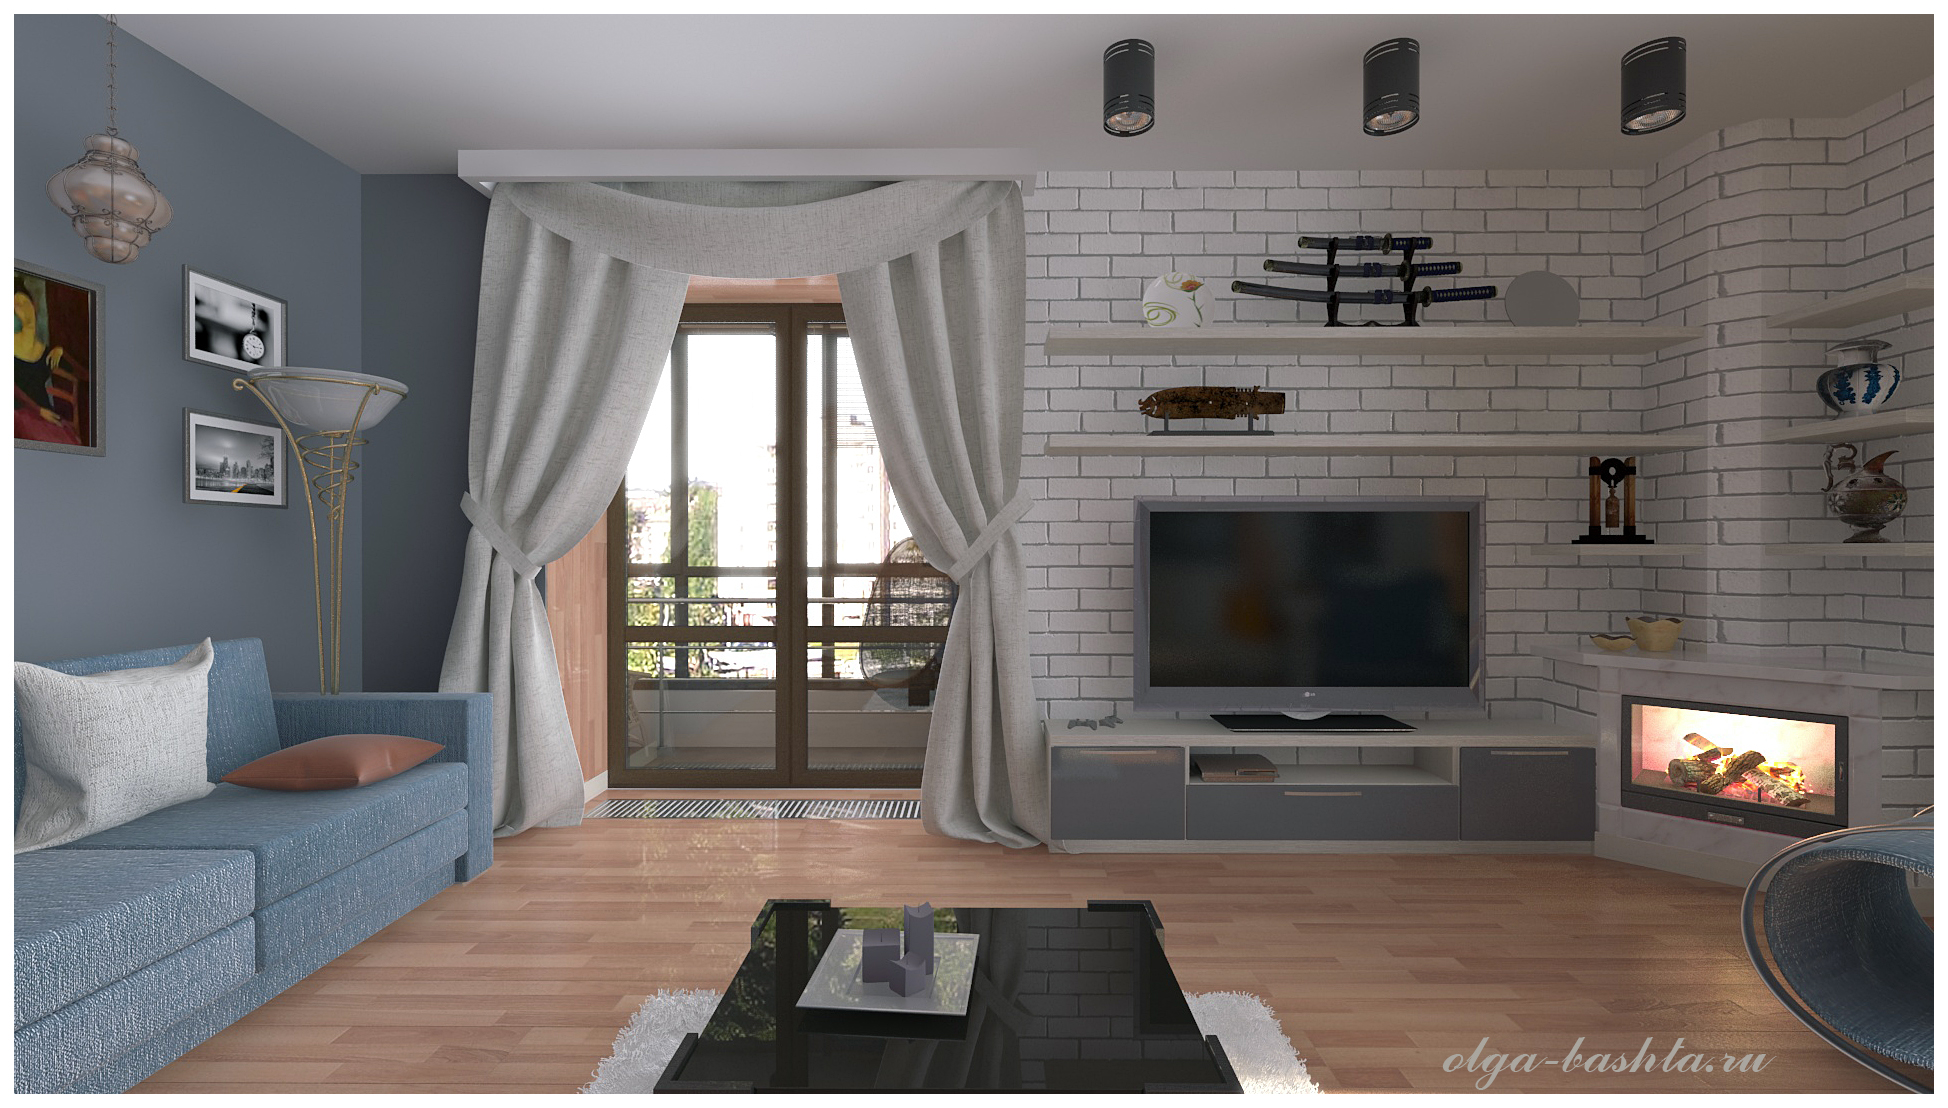 Living room with fireplace in 3d max vray 3.0 image